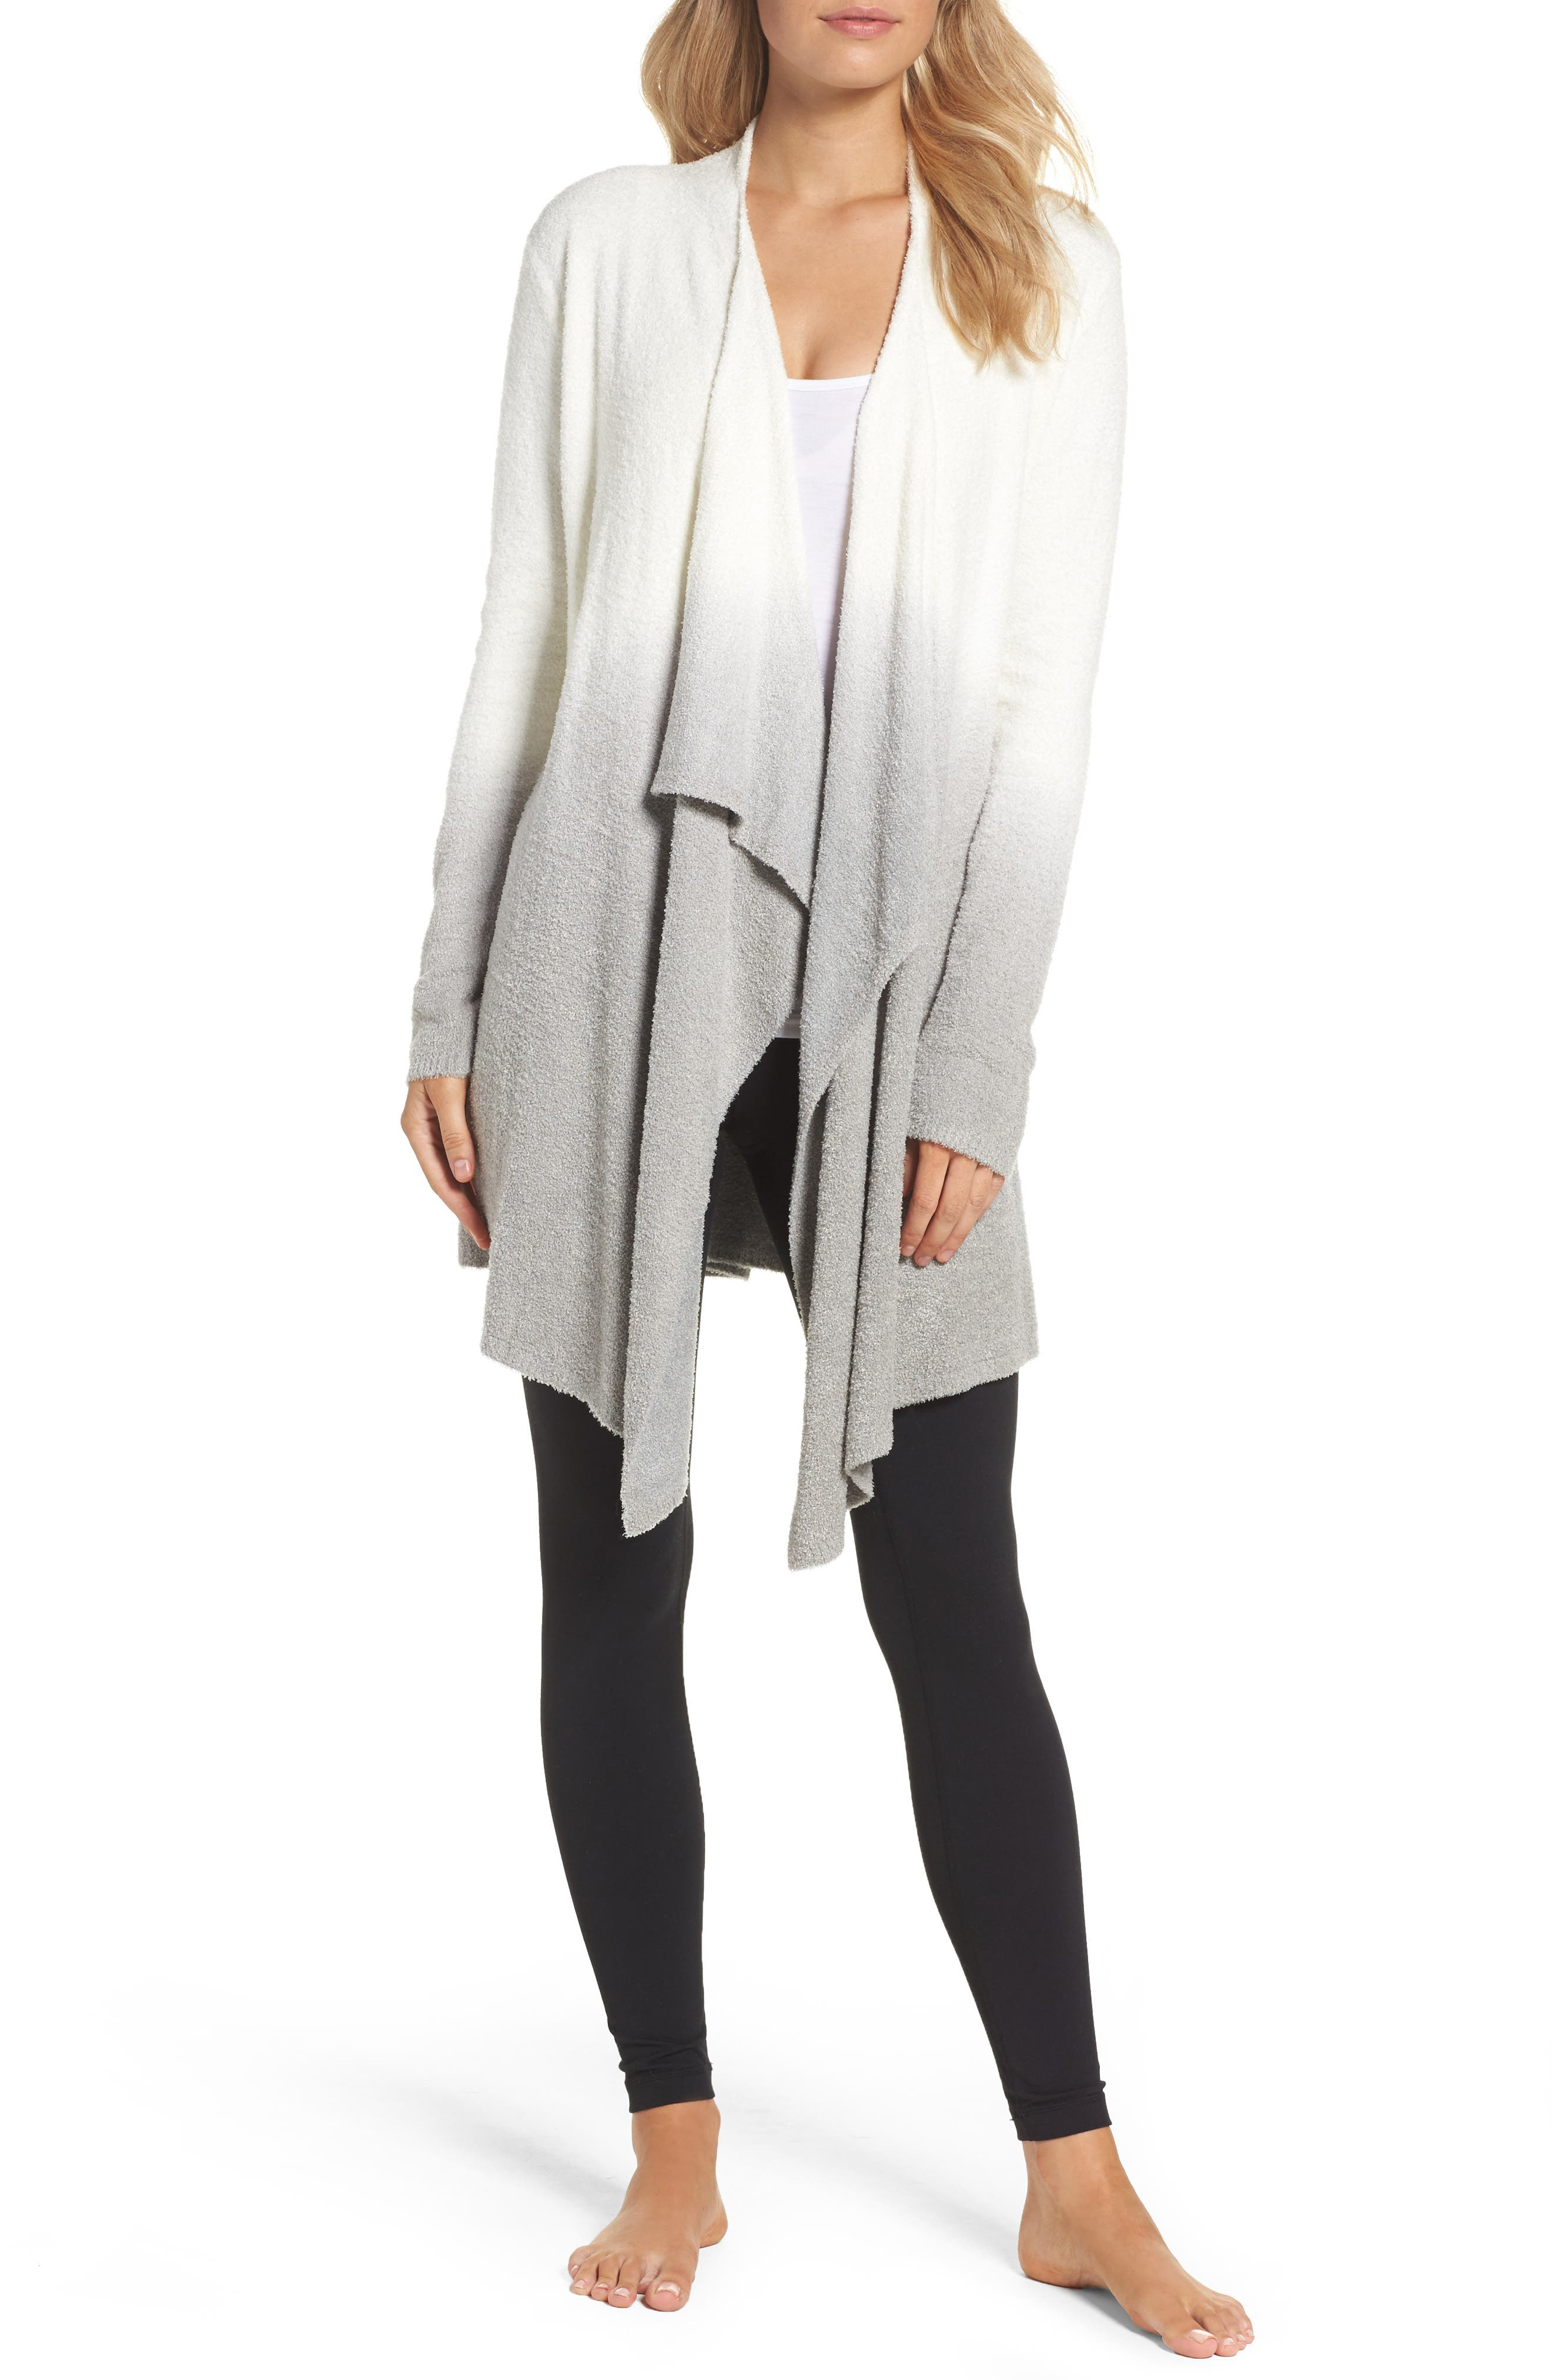 CozyChic Lite<sup>®</sup> Calypso Wrap Cardigan,                         Main,                         color, White/ Pewter Ombre